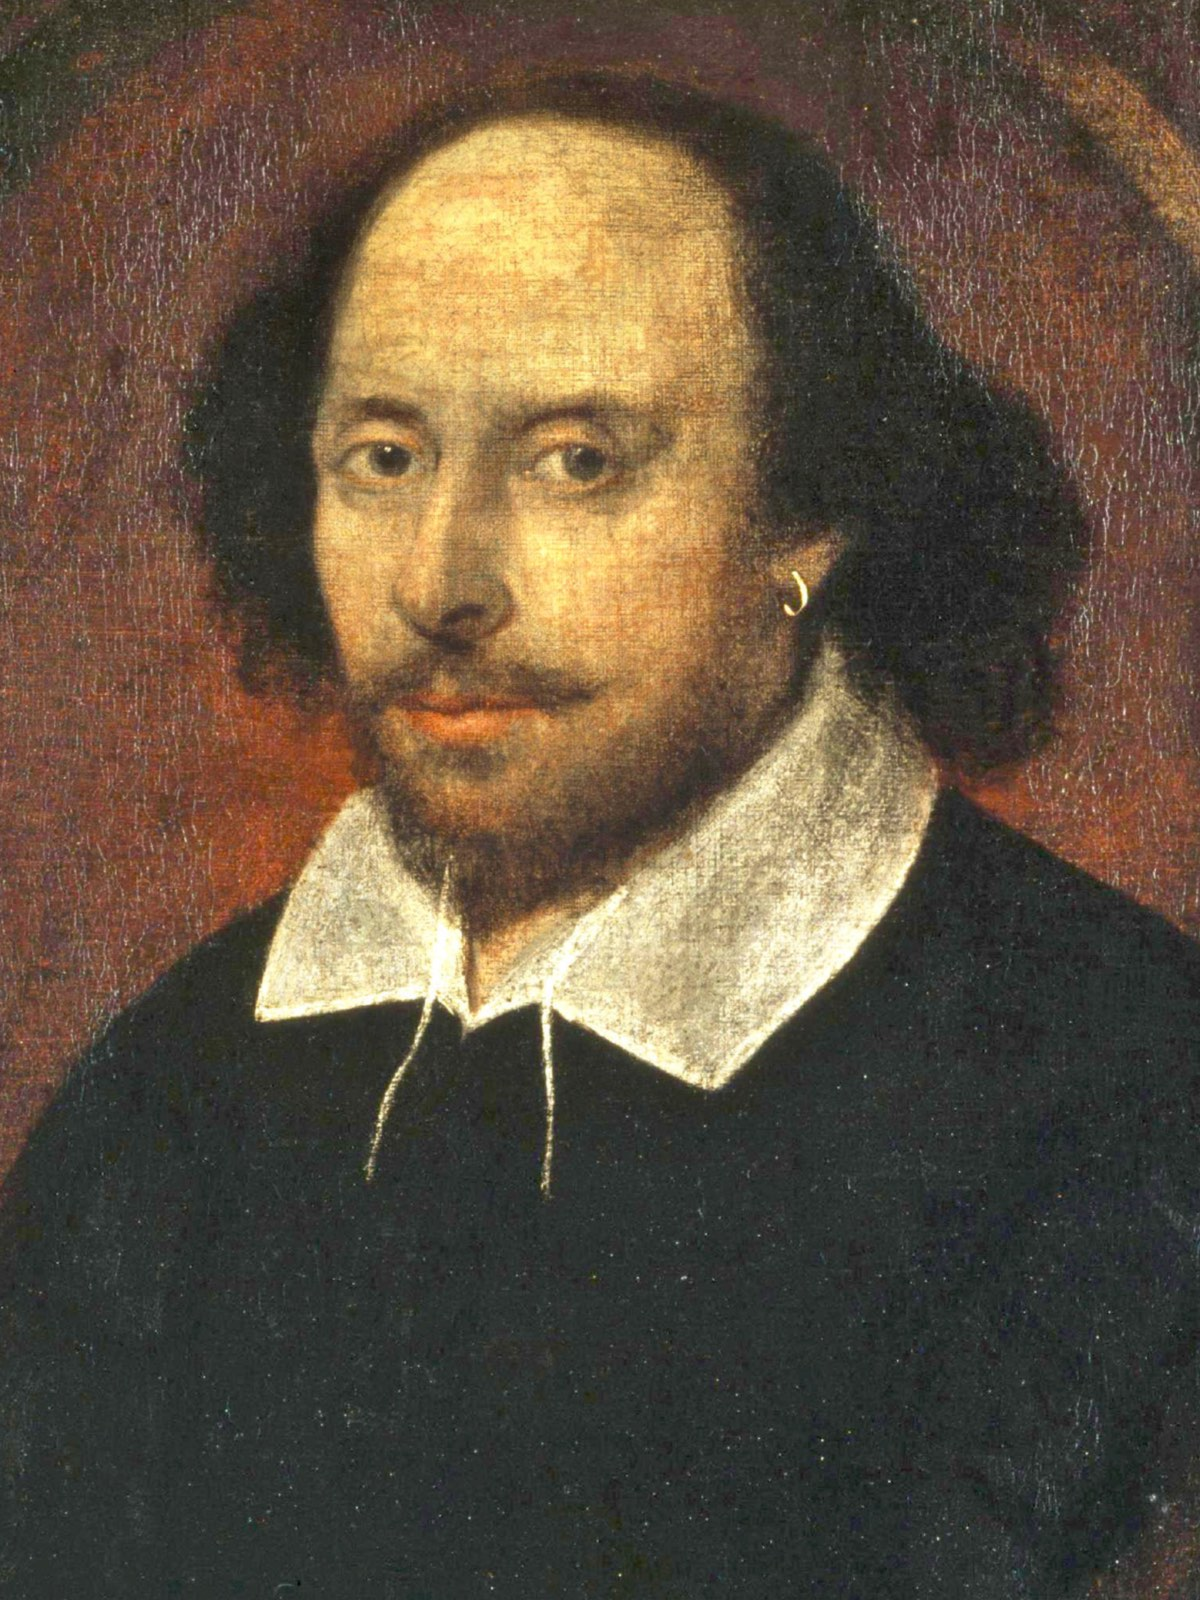 Portrait of Shakespeare by unknown artist